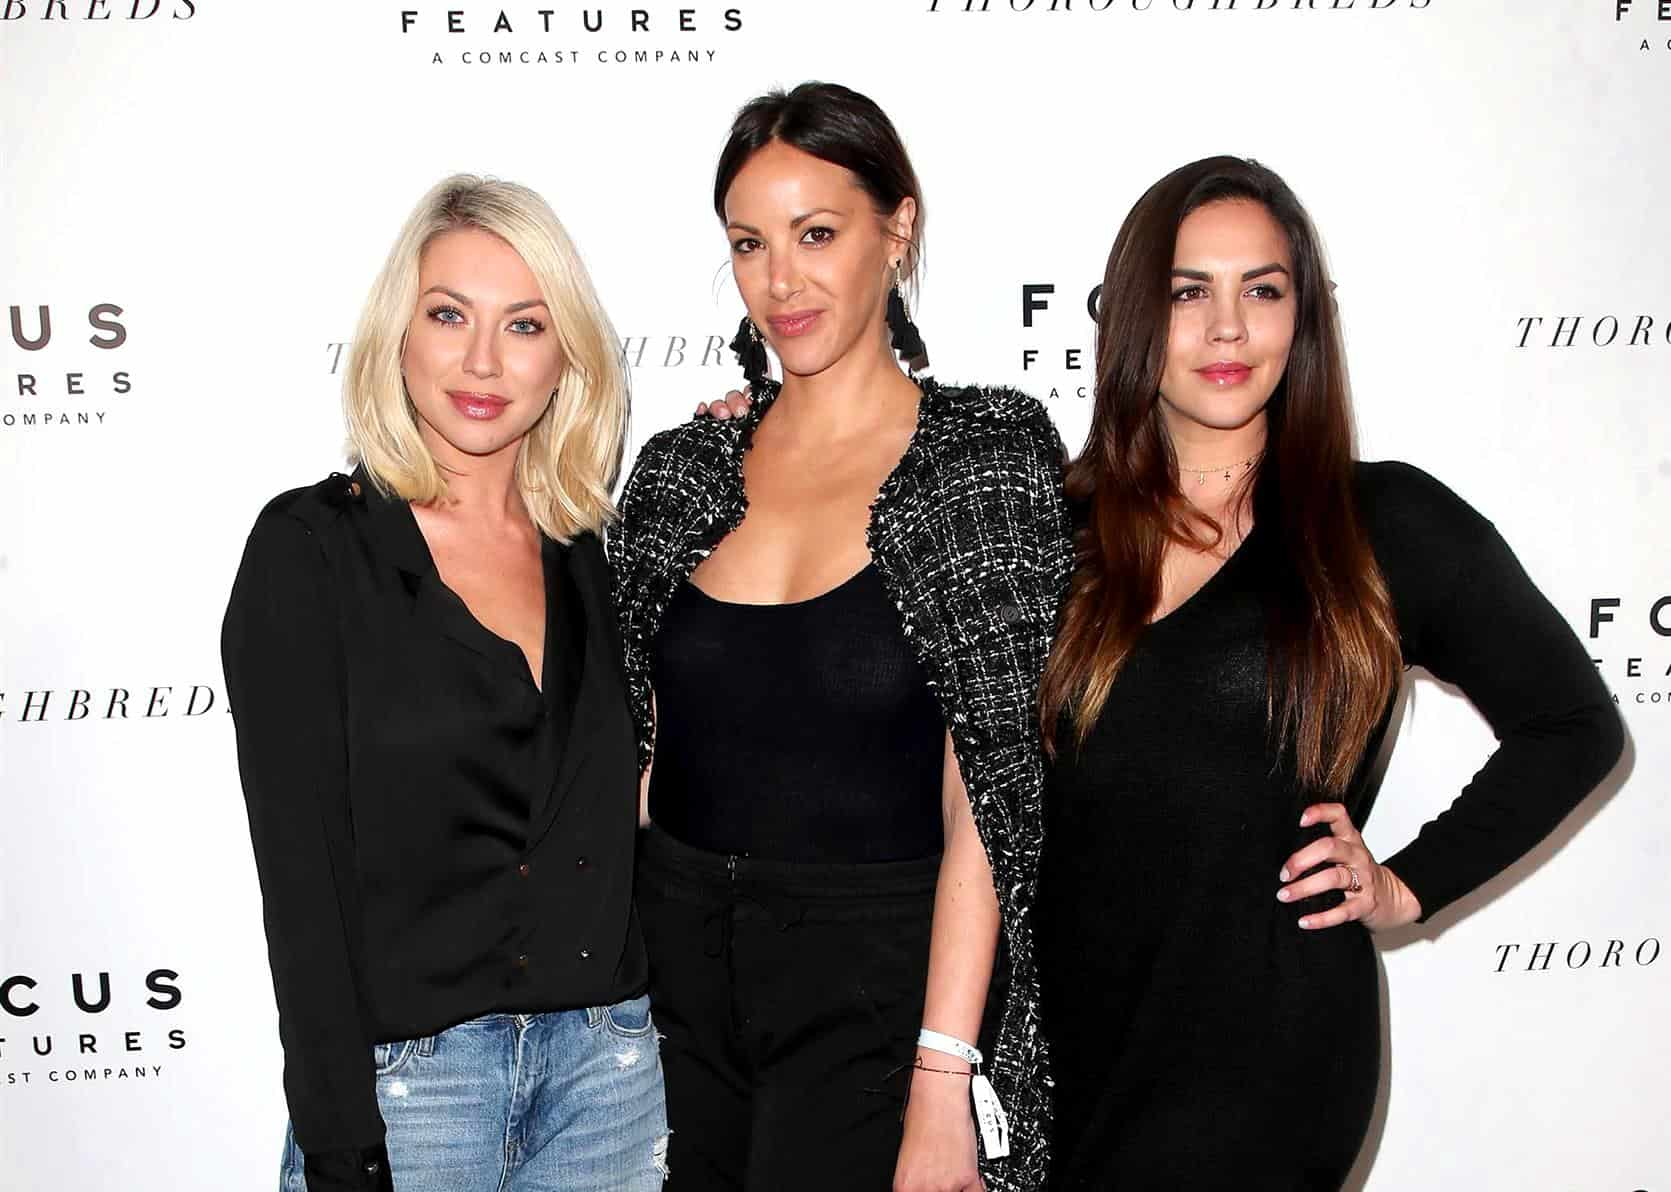 Stassi Schroeder's Mom Dayna Hints Kristen Doute is Feuding With Vanderpump Rules Cast, Did a Fight at Jax and Brittany's Wedding Prompt the Drama?